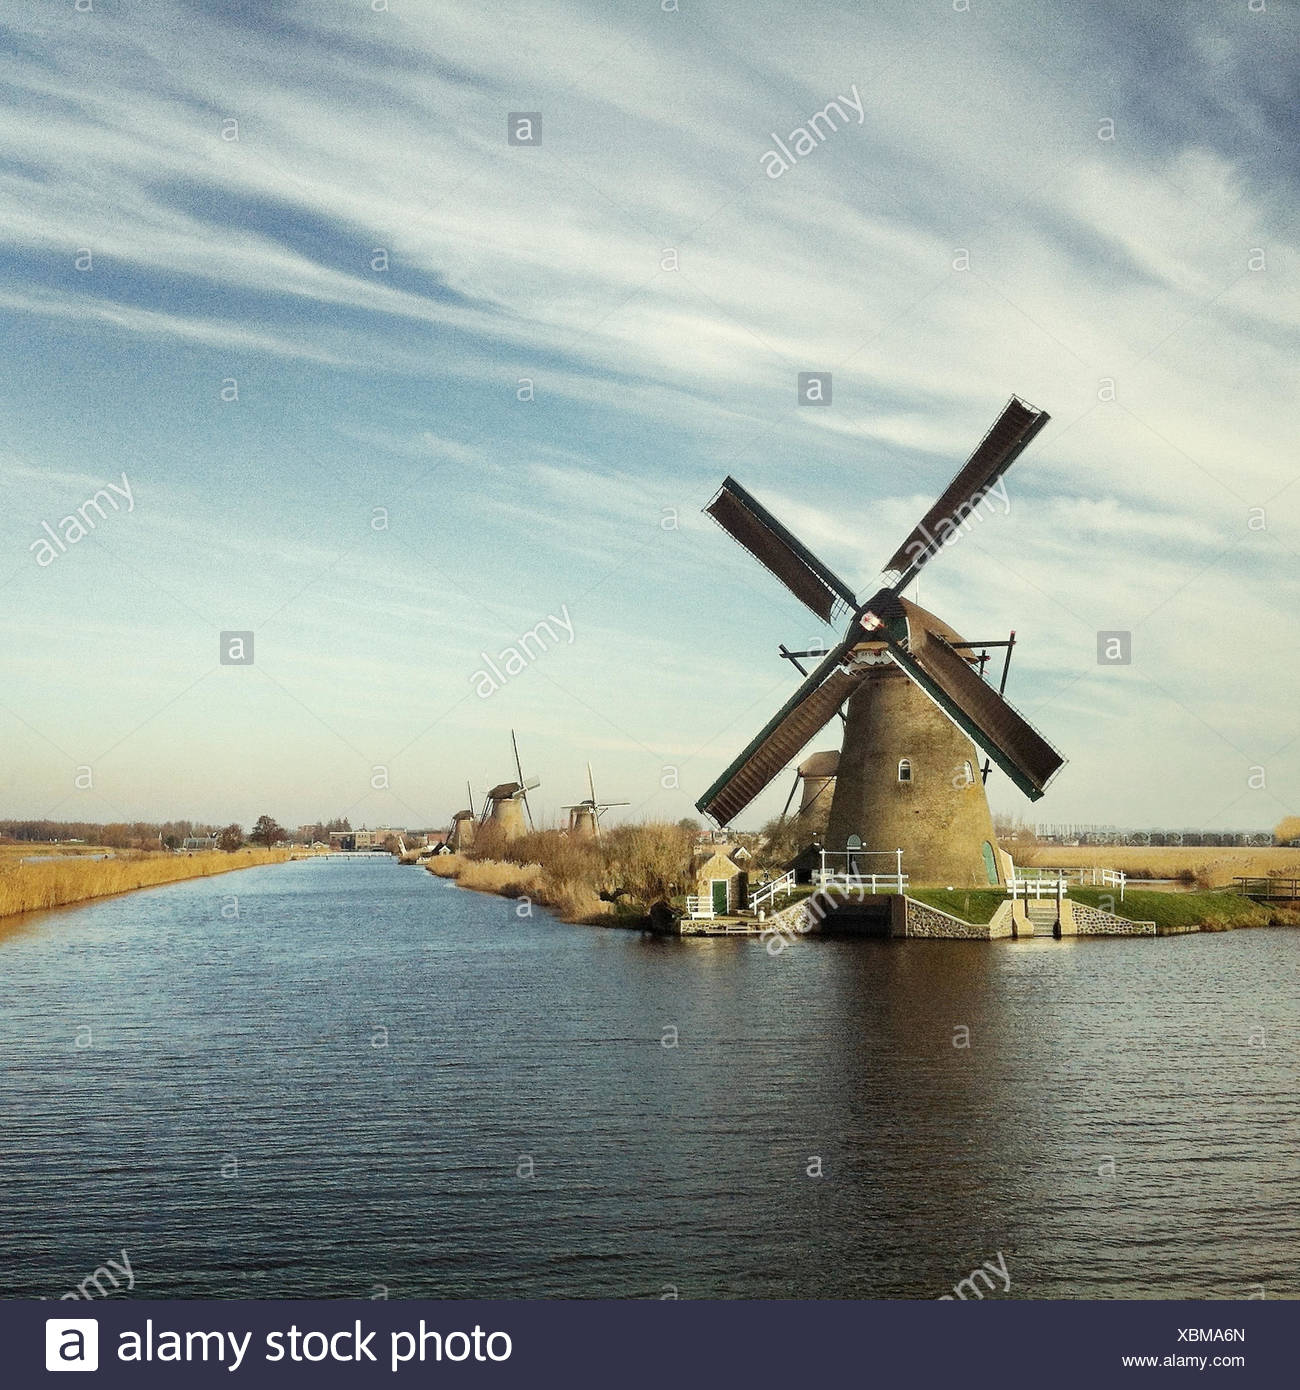 Windmill by river - Stock Image